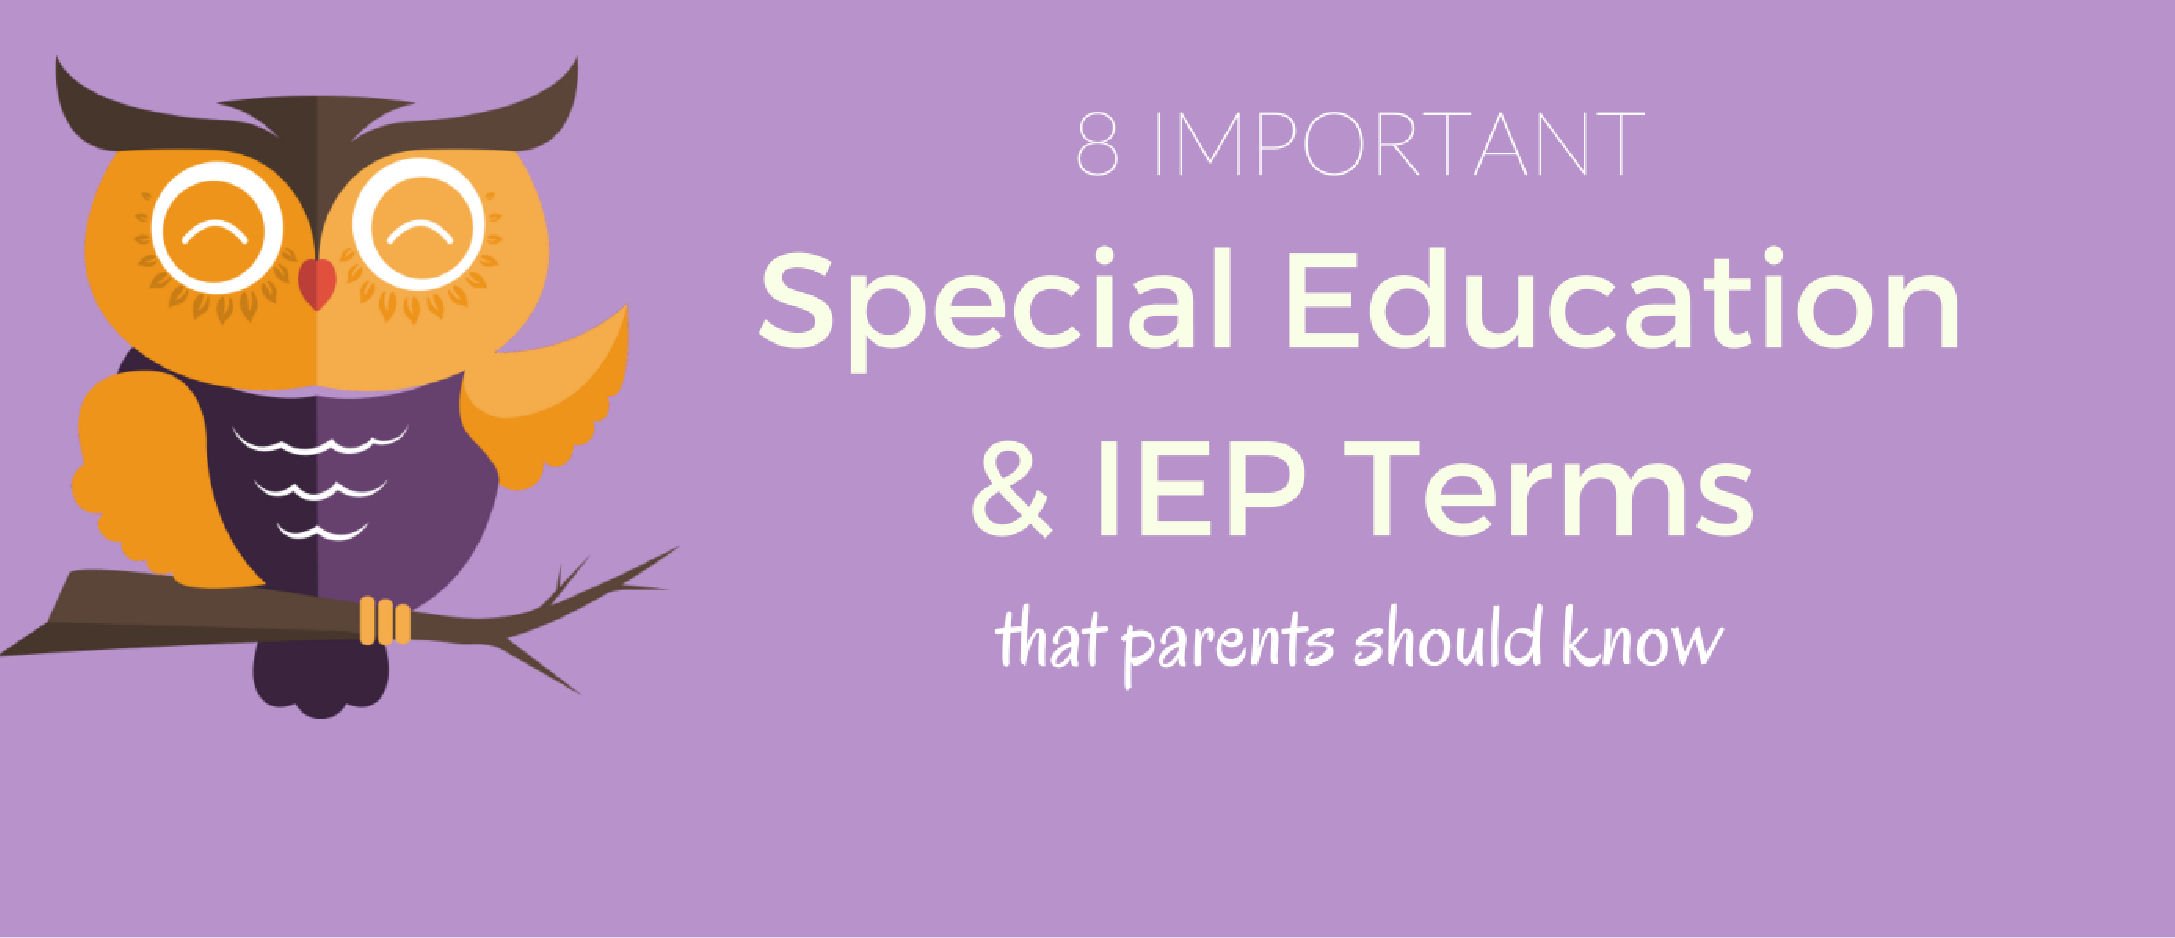 IEP and Special Education Terms